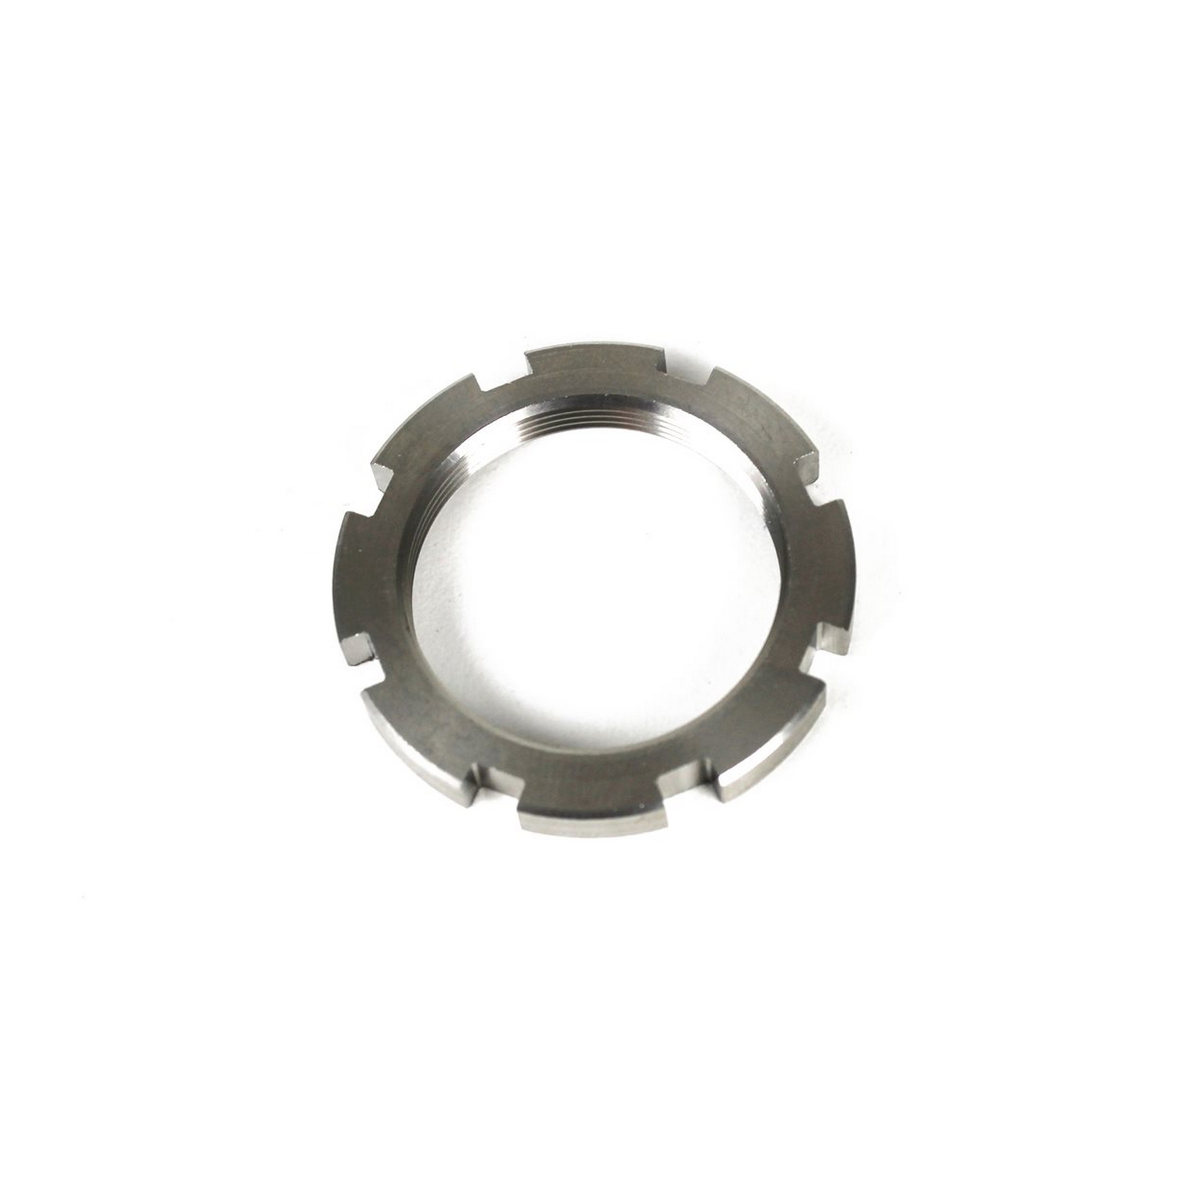 Lockring for spider chainring fixing